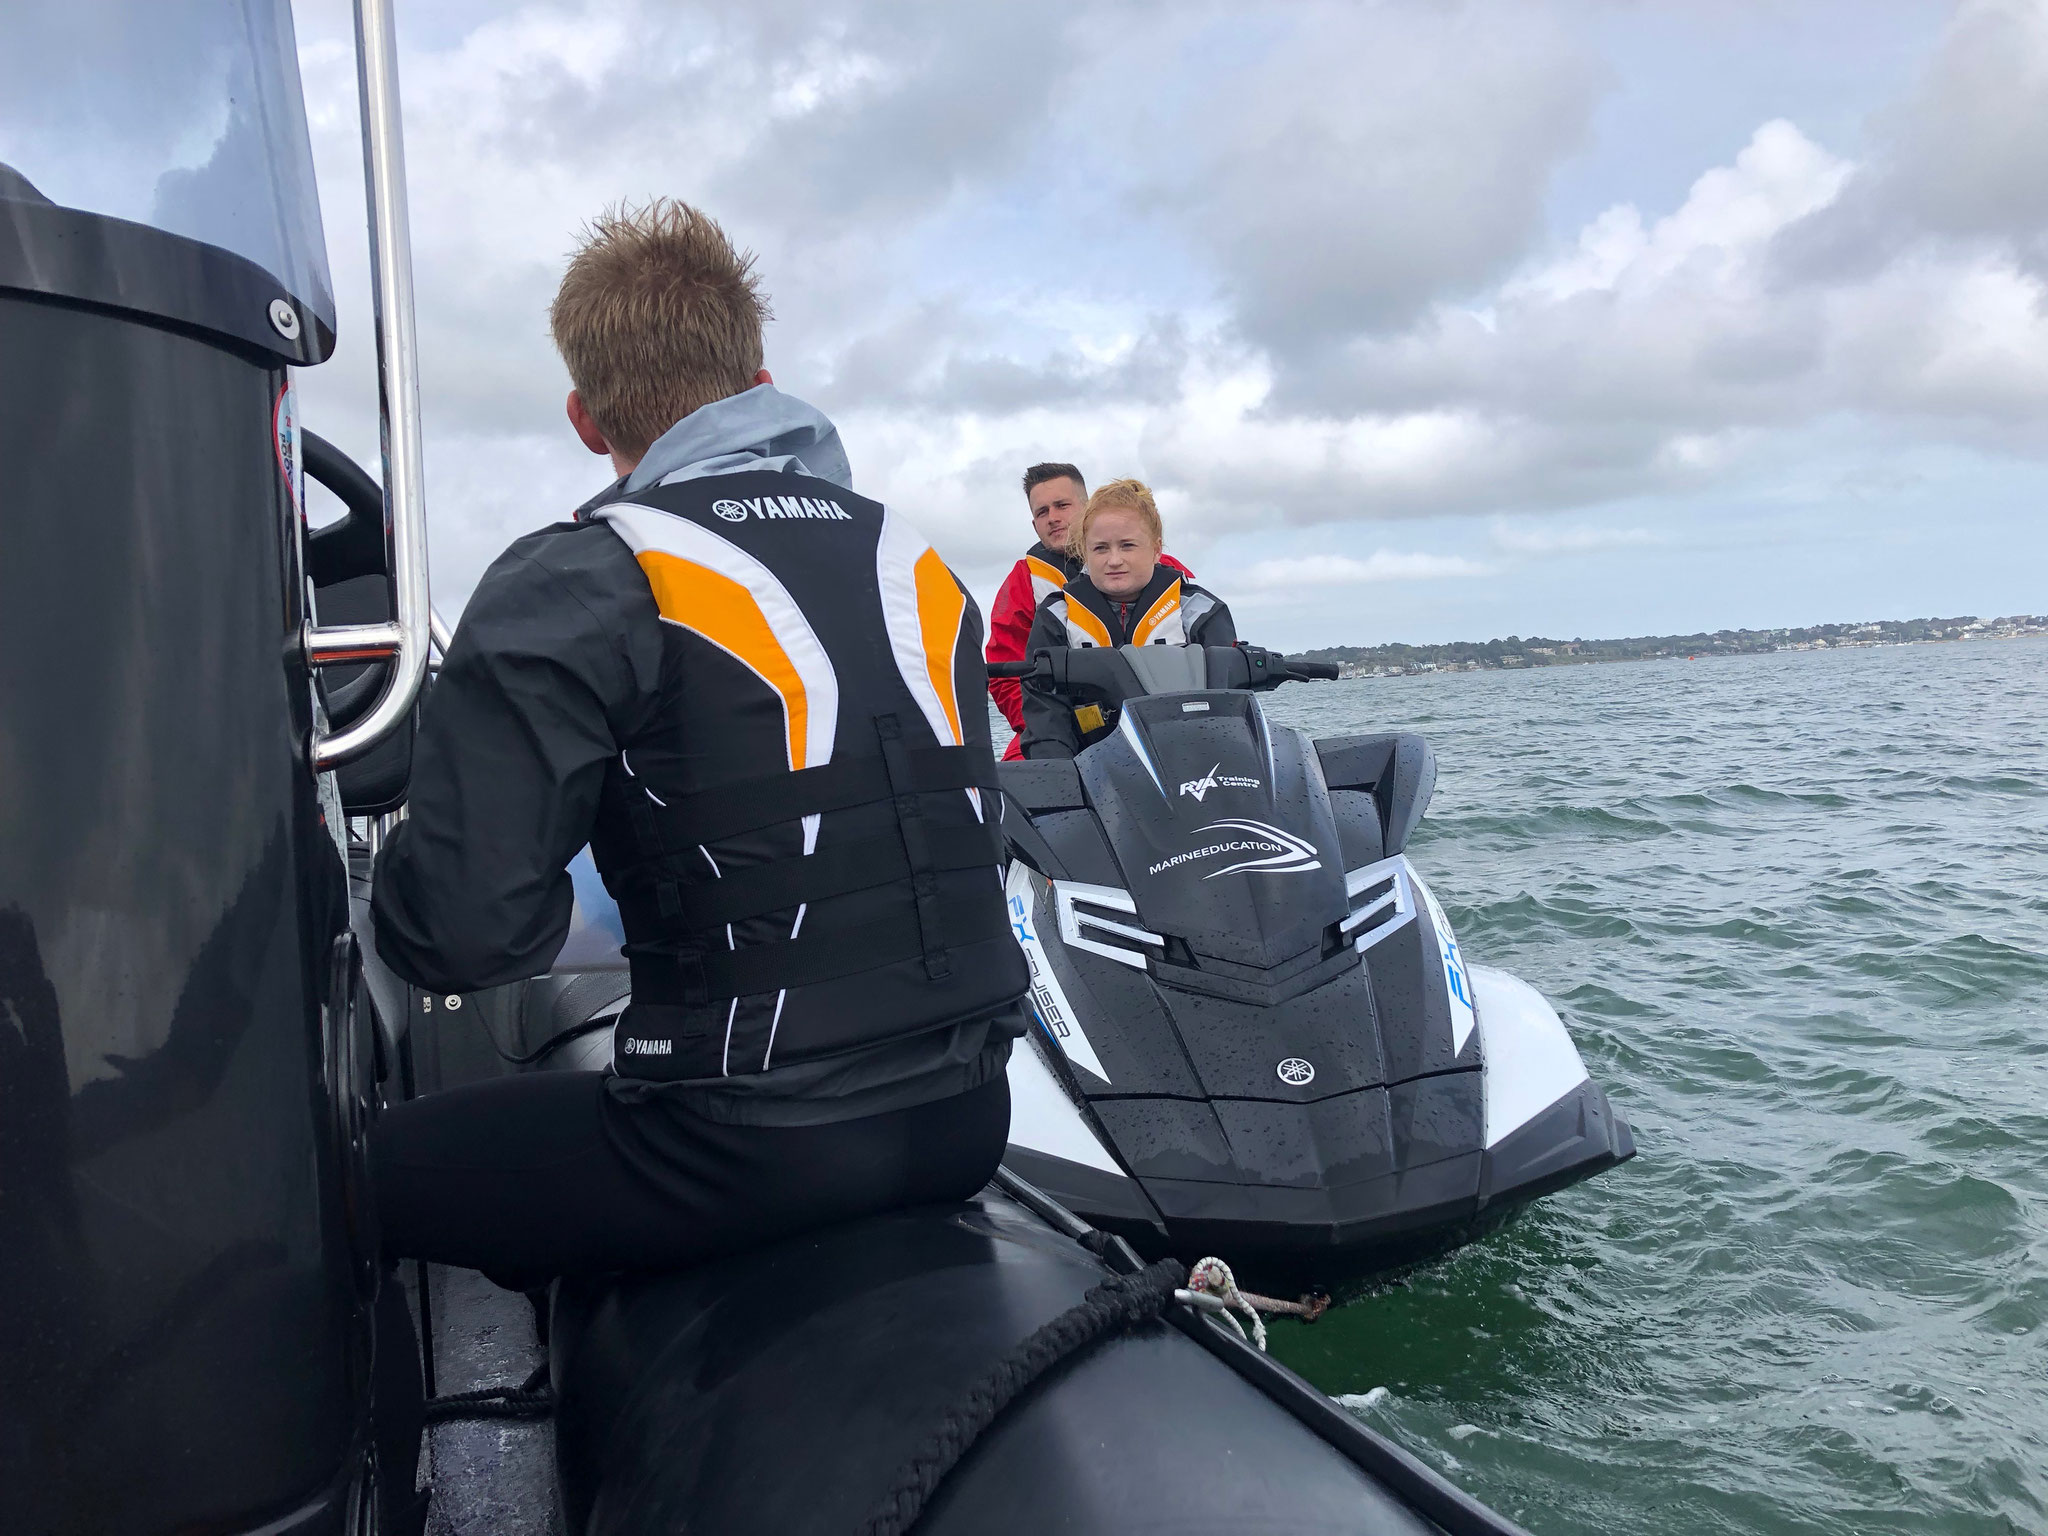 RYA Jetski (PWC) Instructor Course, Poole